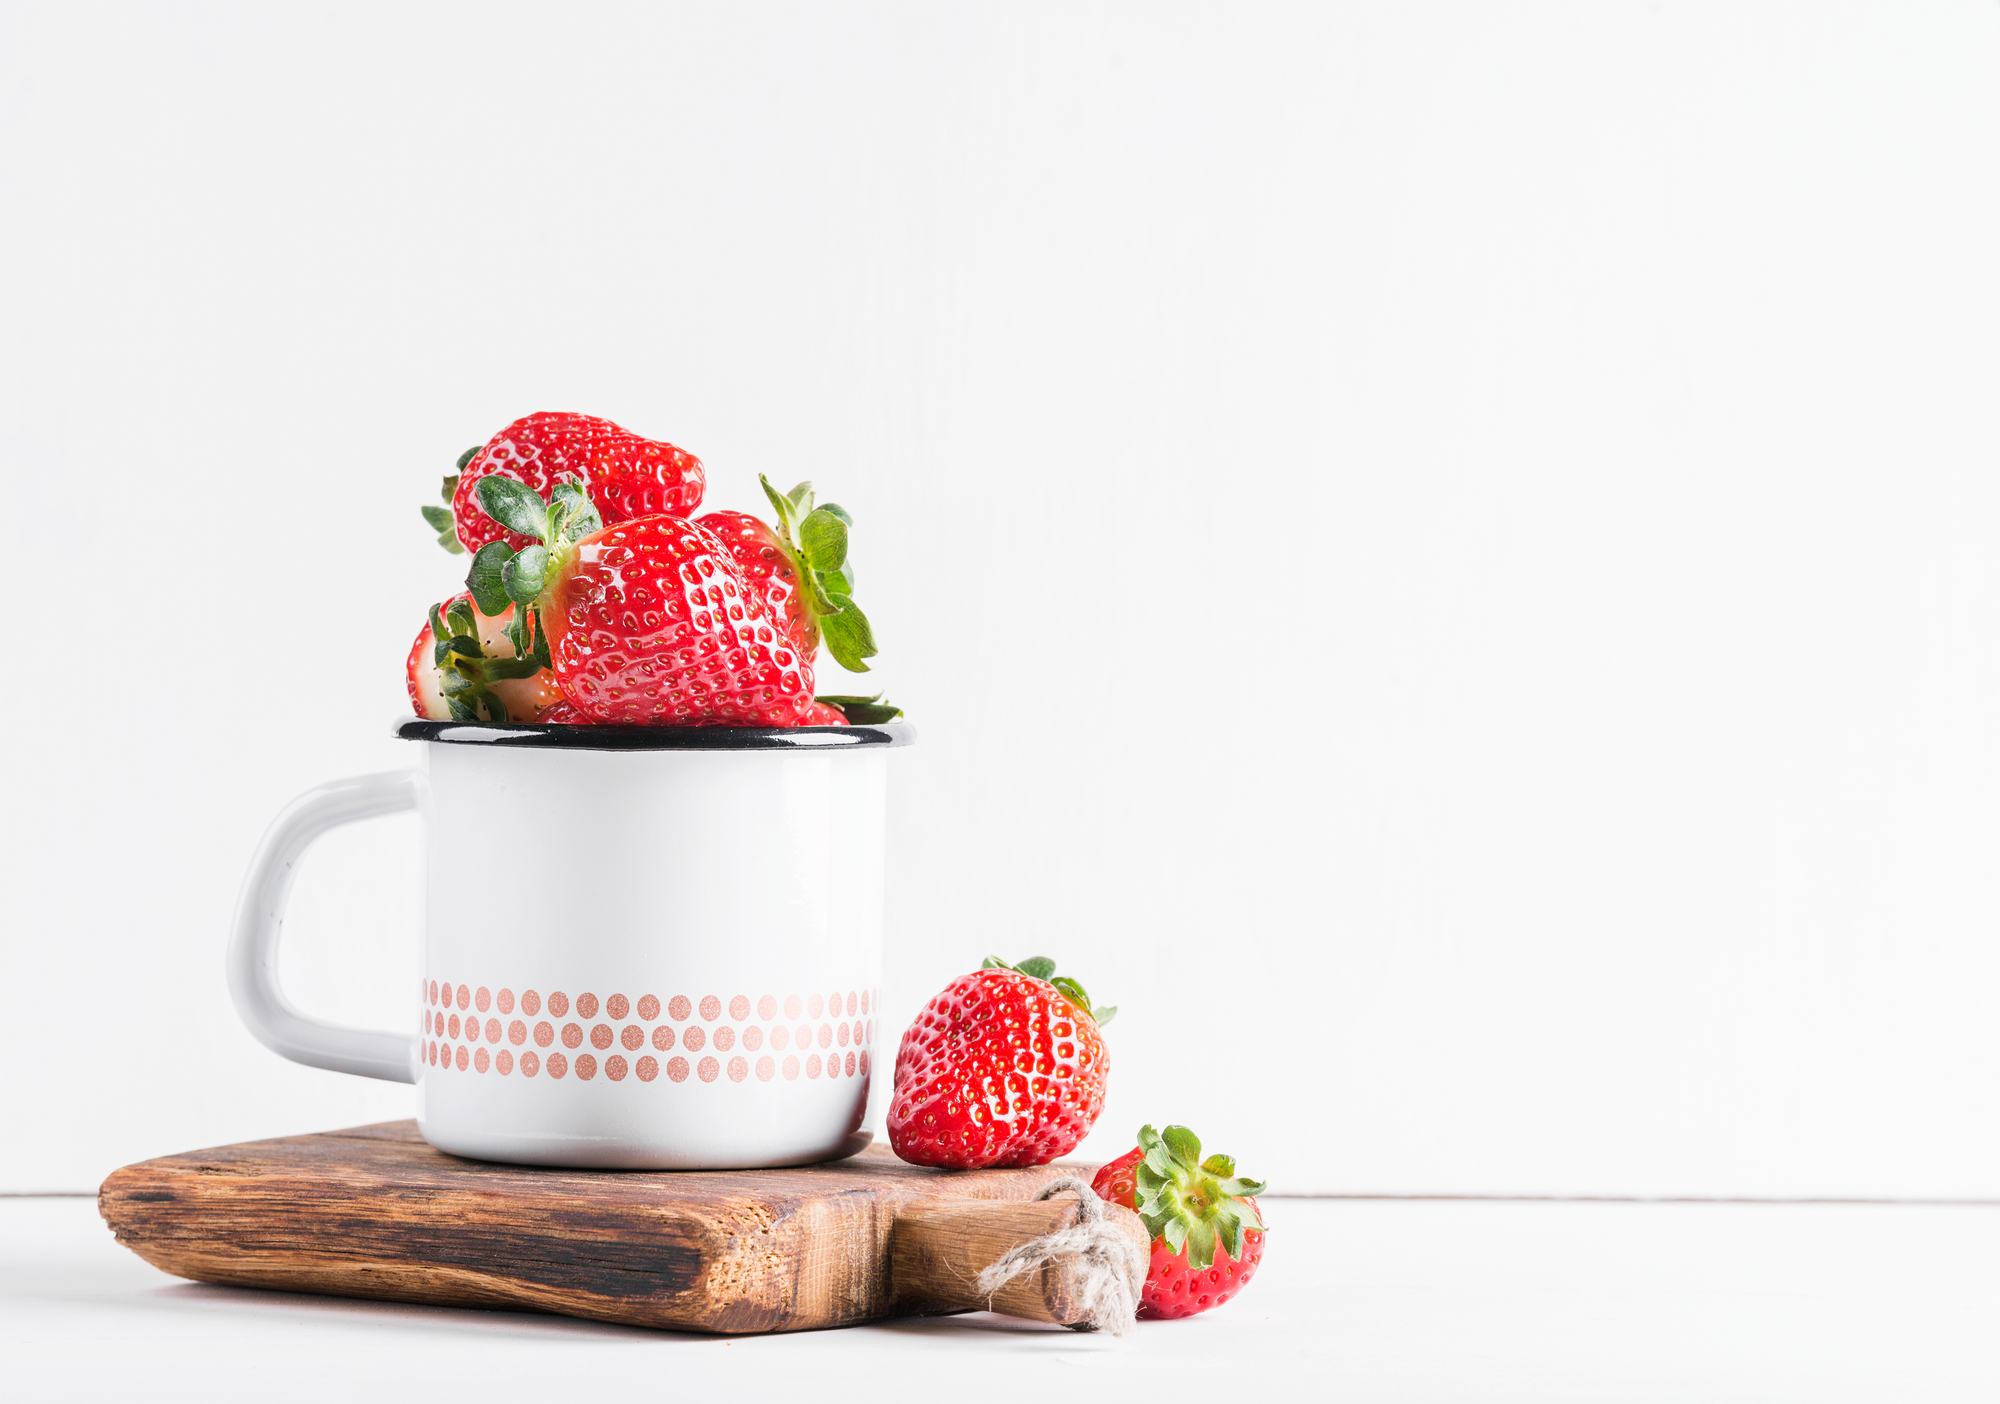 Fresh ripe red strawberries in country style enamel mug on rustic wooden board over white background